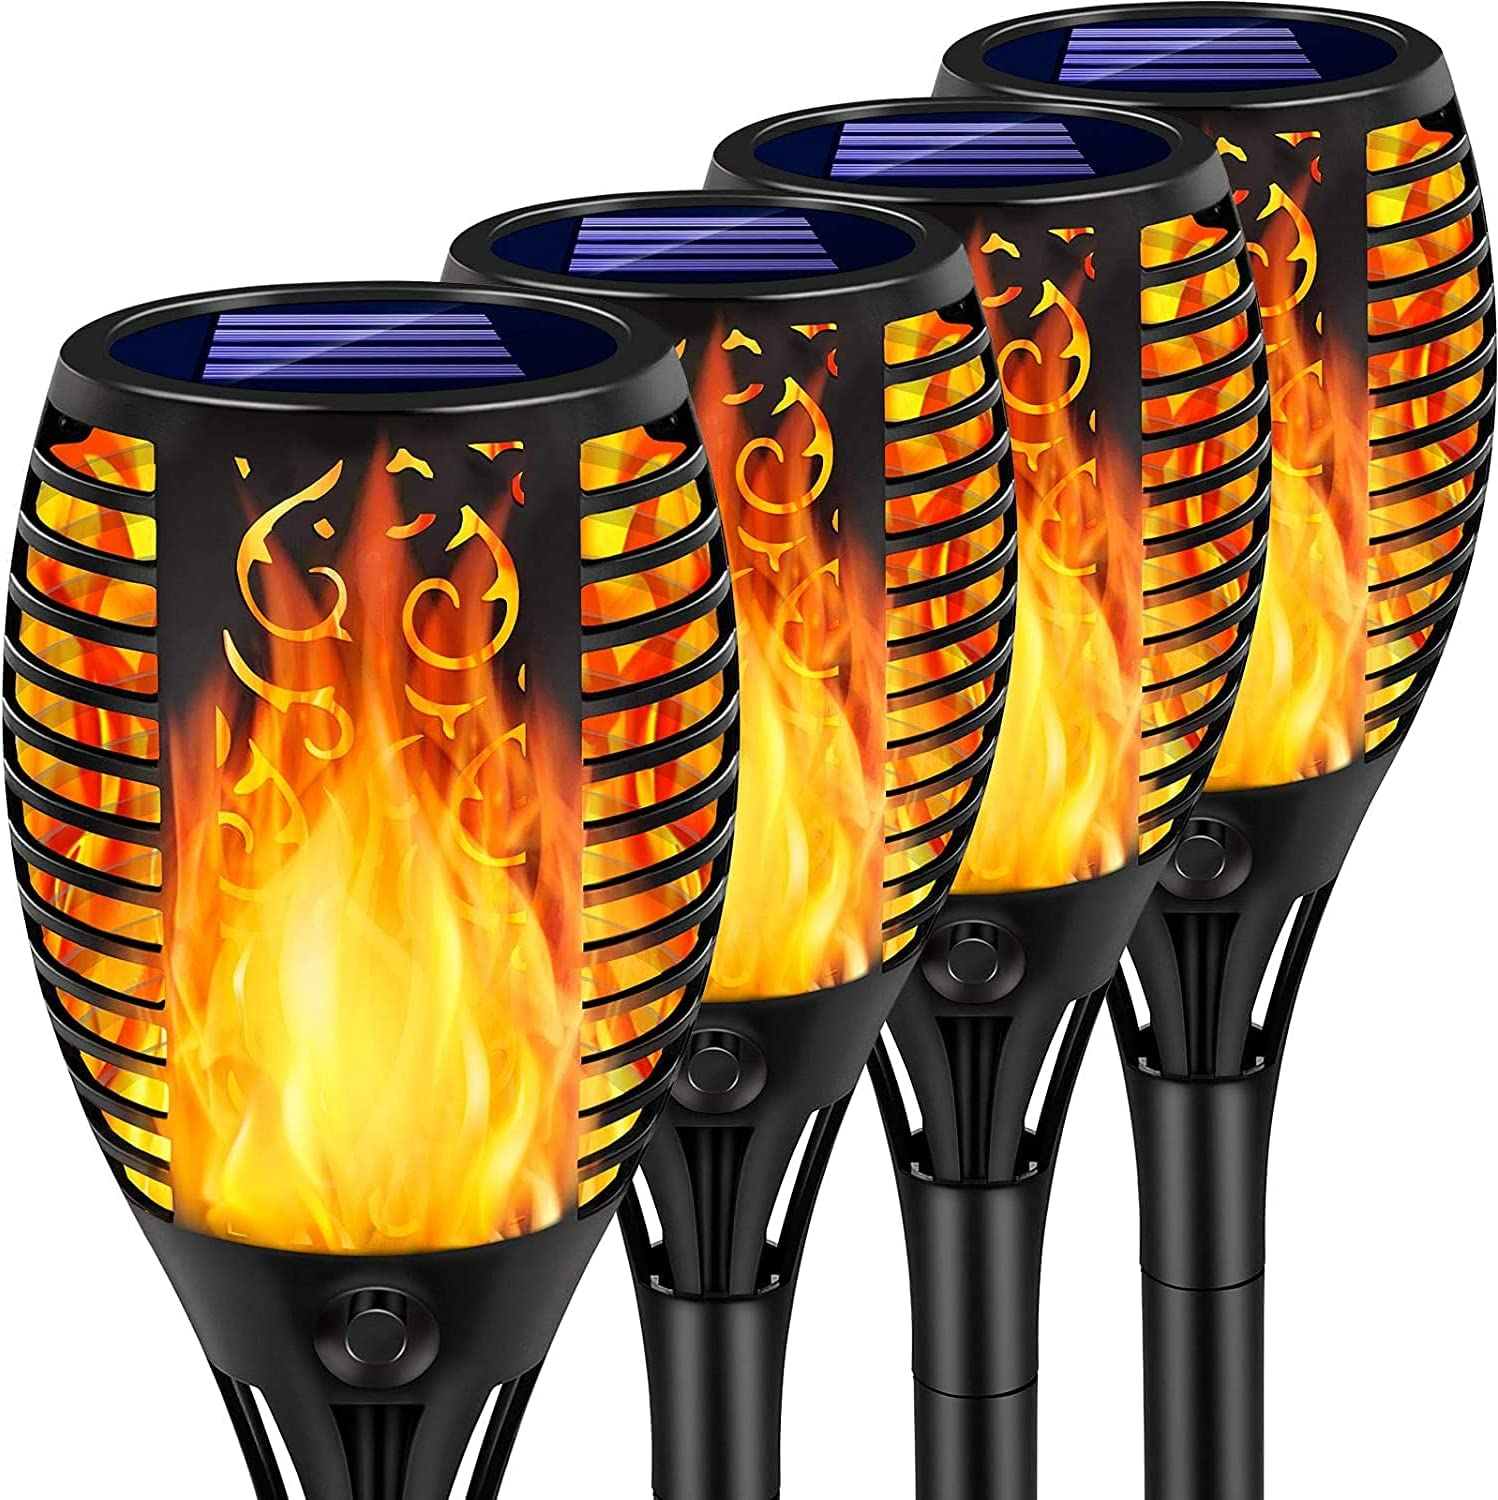 Arrinew 33 LED 4-Pack Solar Torch Flame Lights $18 Coupon